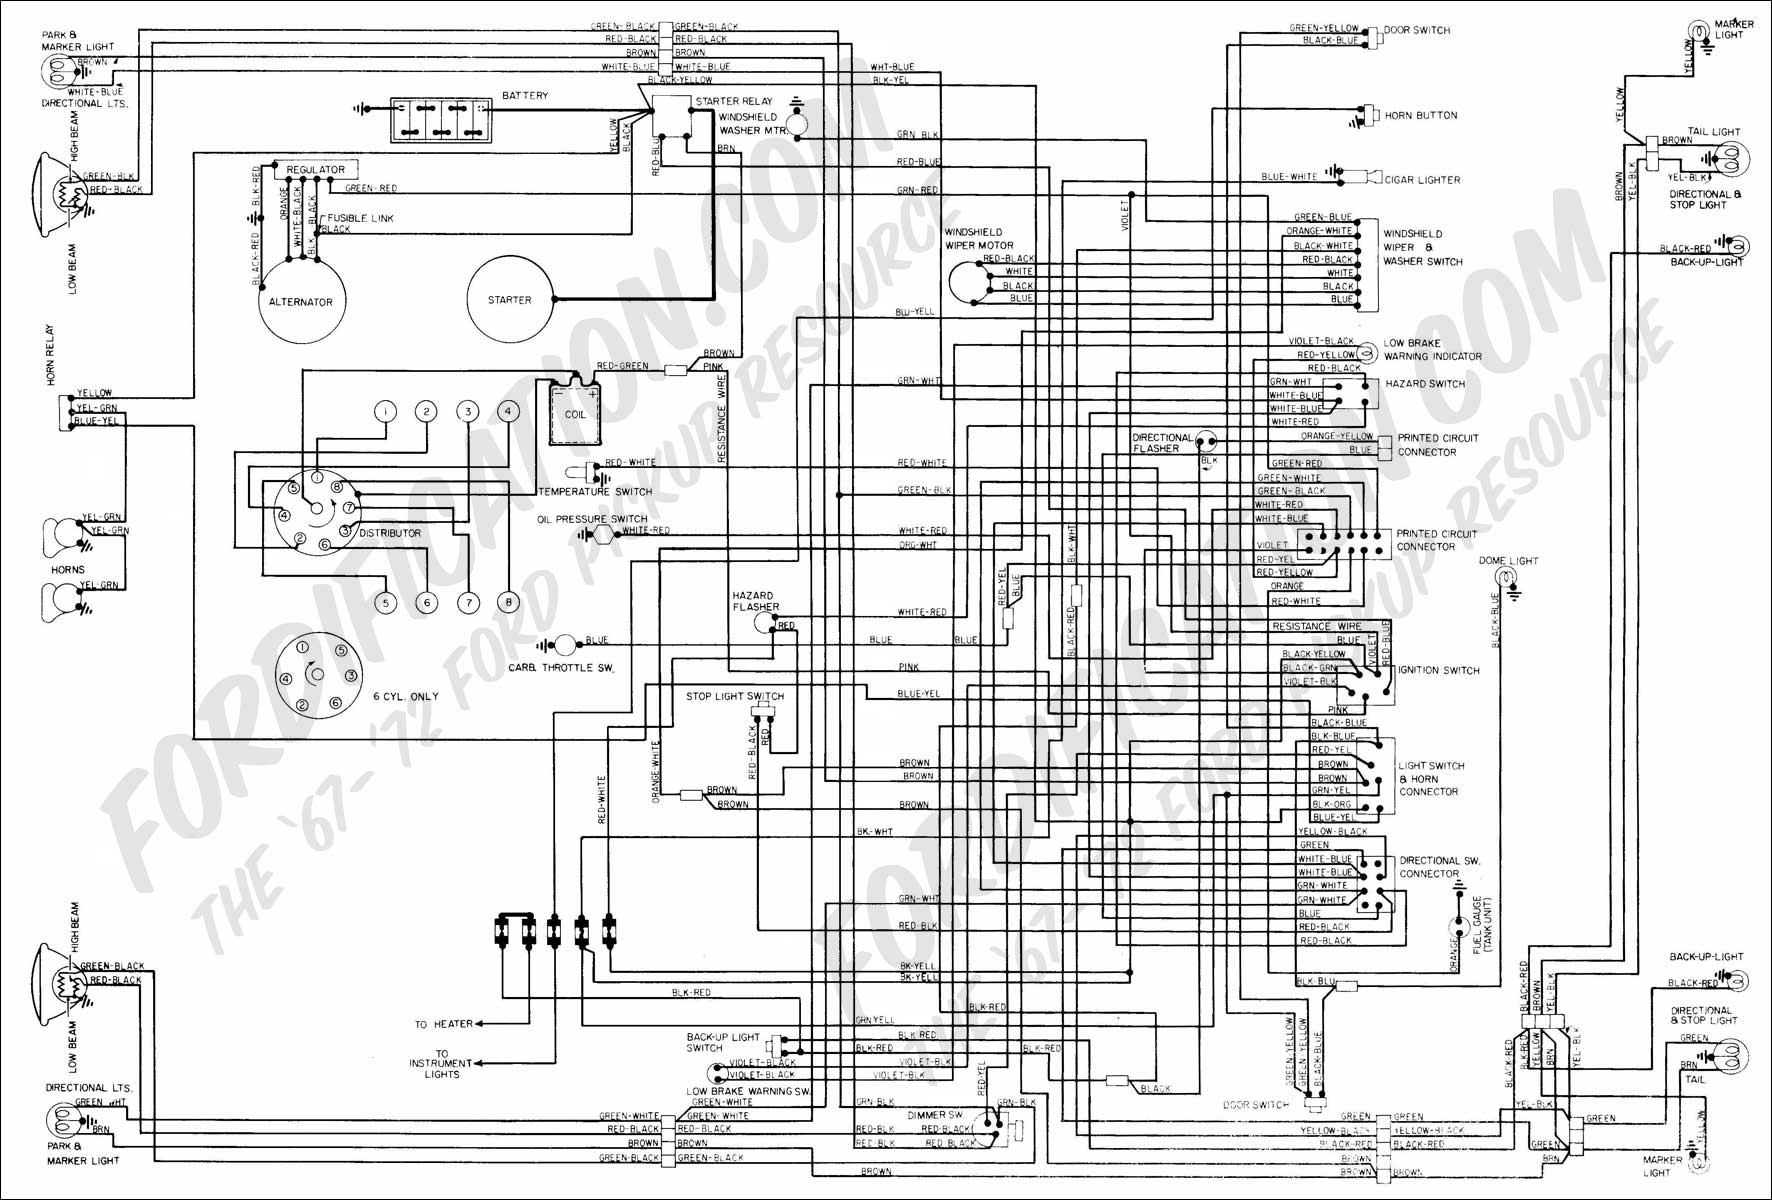 2007 ford f350 wiring diagram wiring diagram schematics 2007 ford wiring  diagram wiring diagram schemes 2007